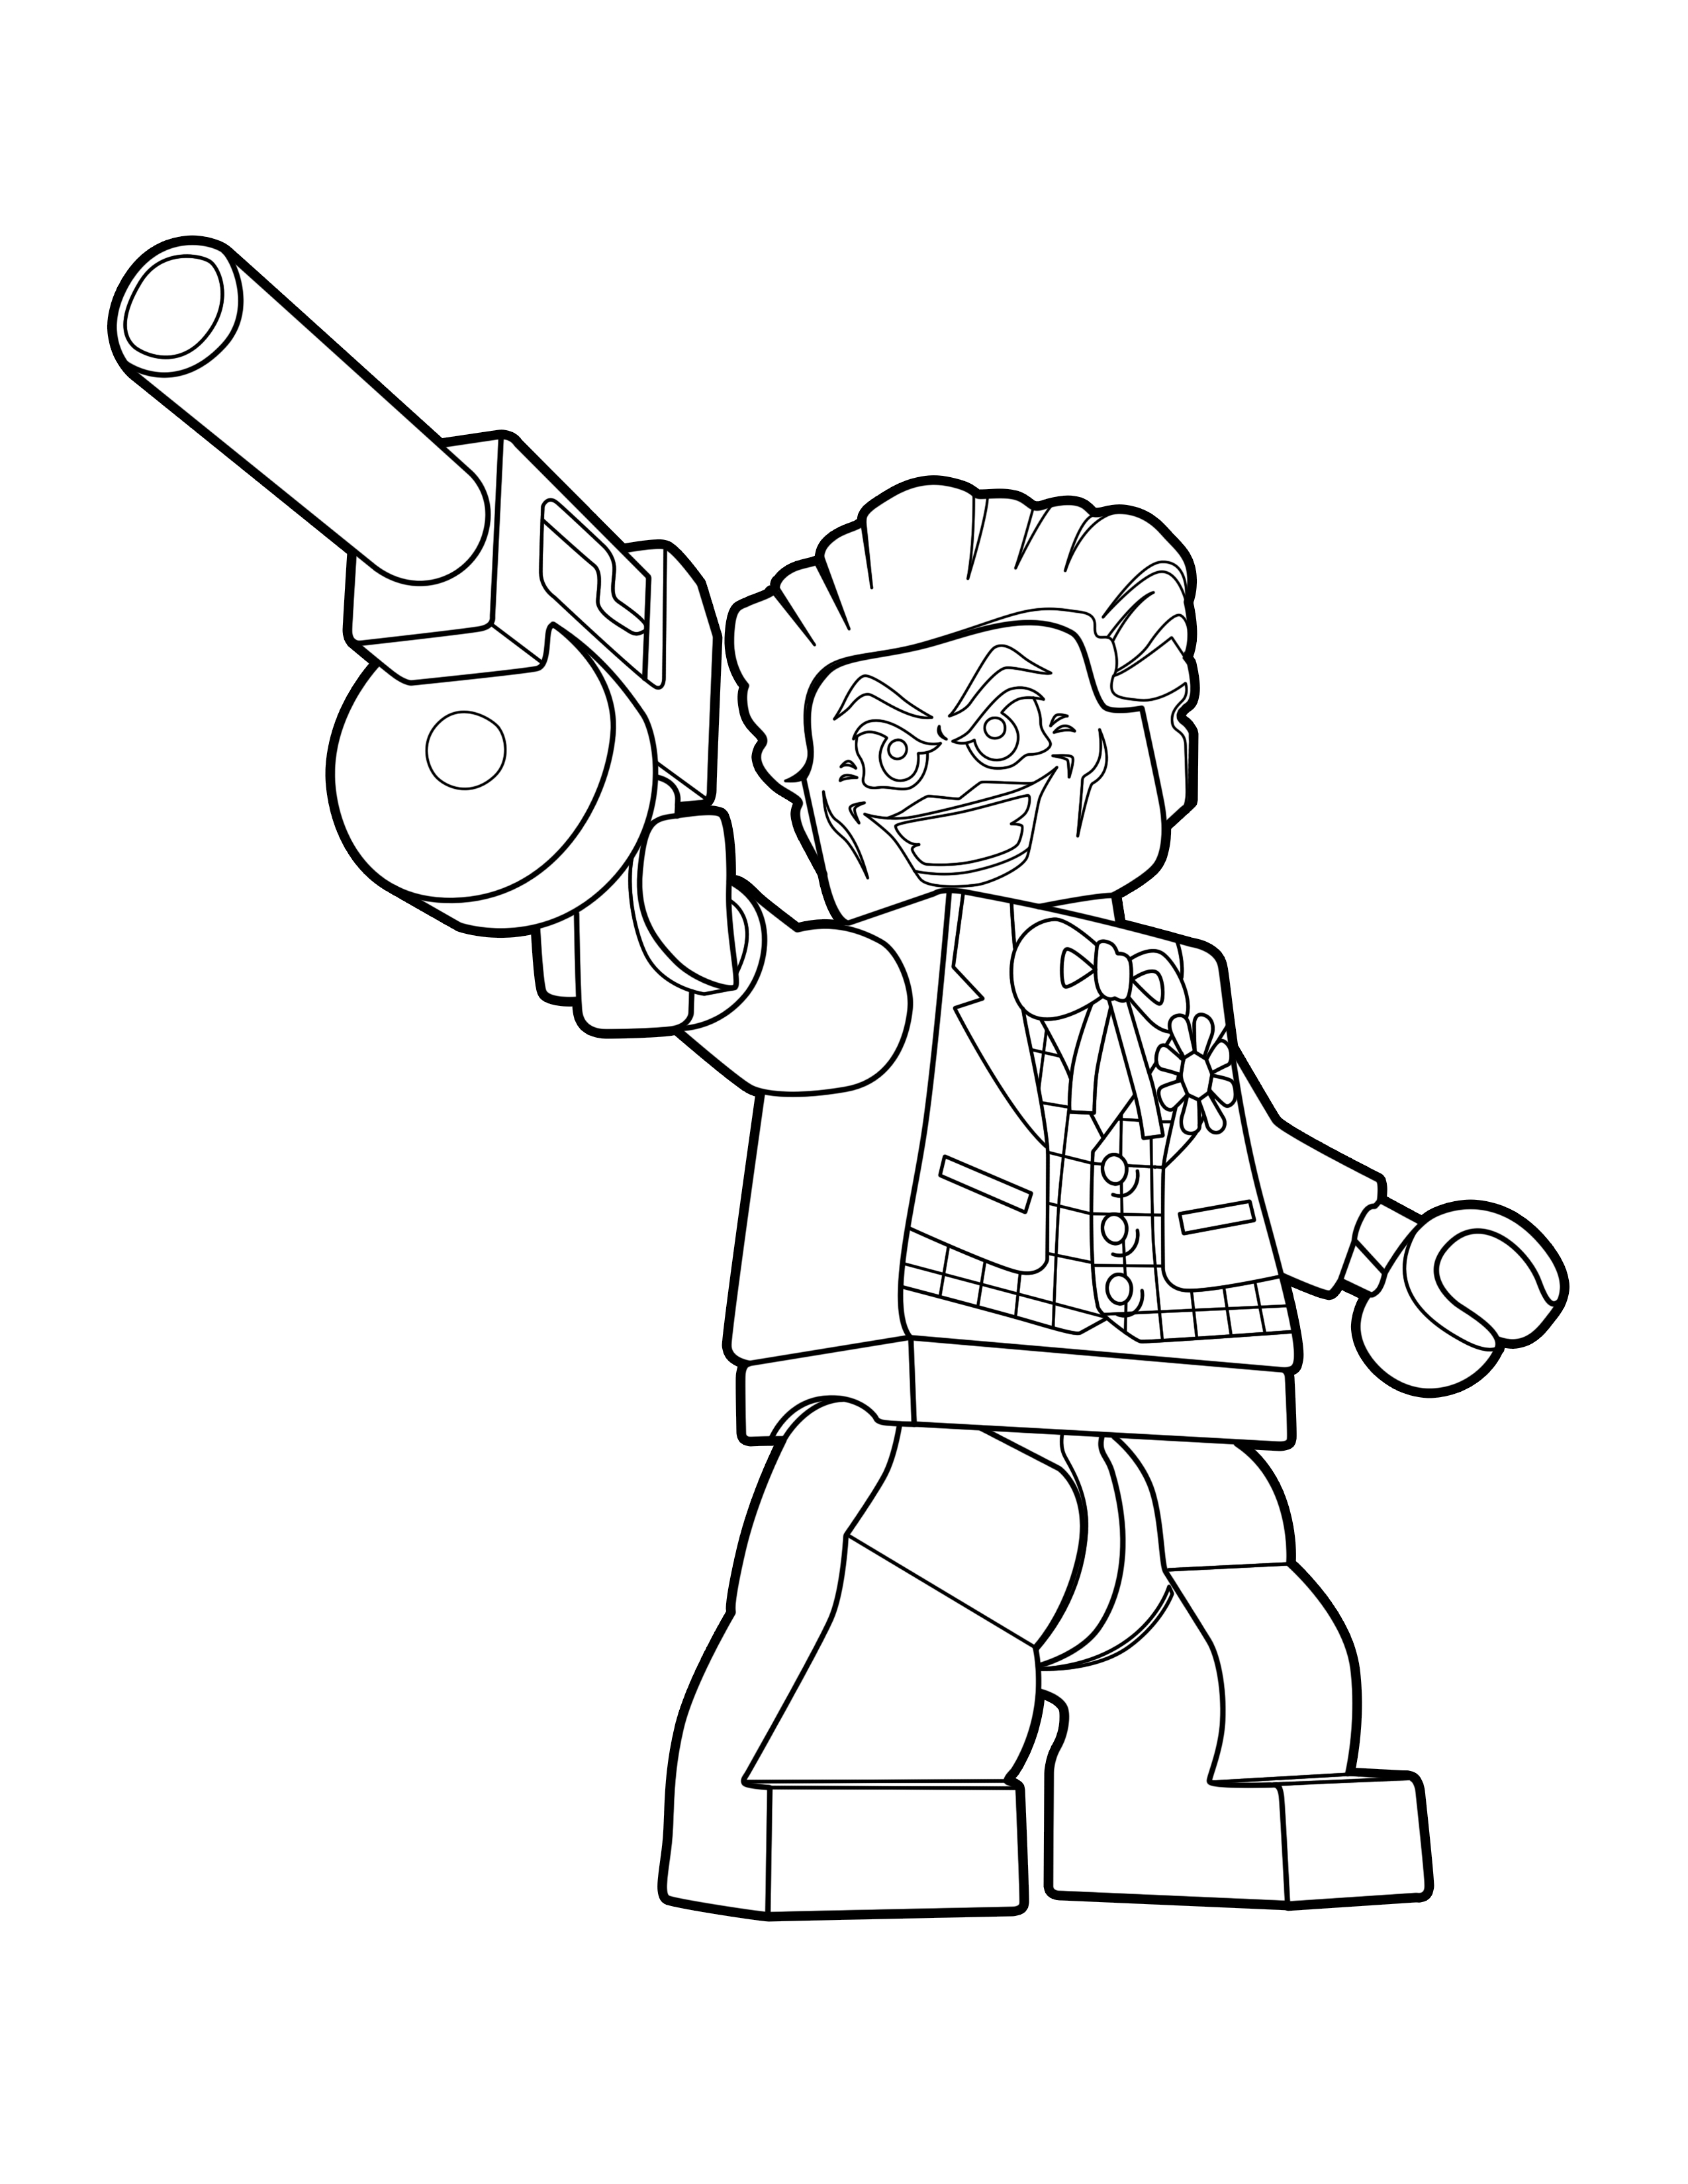 lego joker coloring pages lego joker coloring page free printable coloring pages lego joker pages coloring